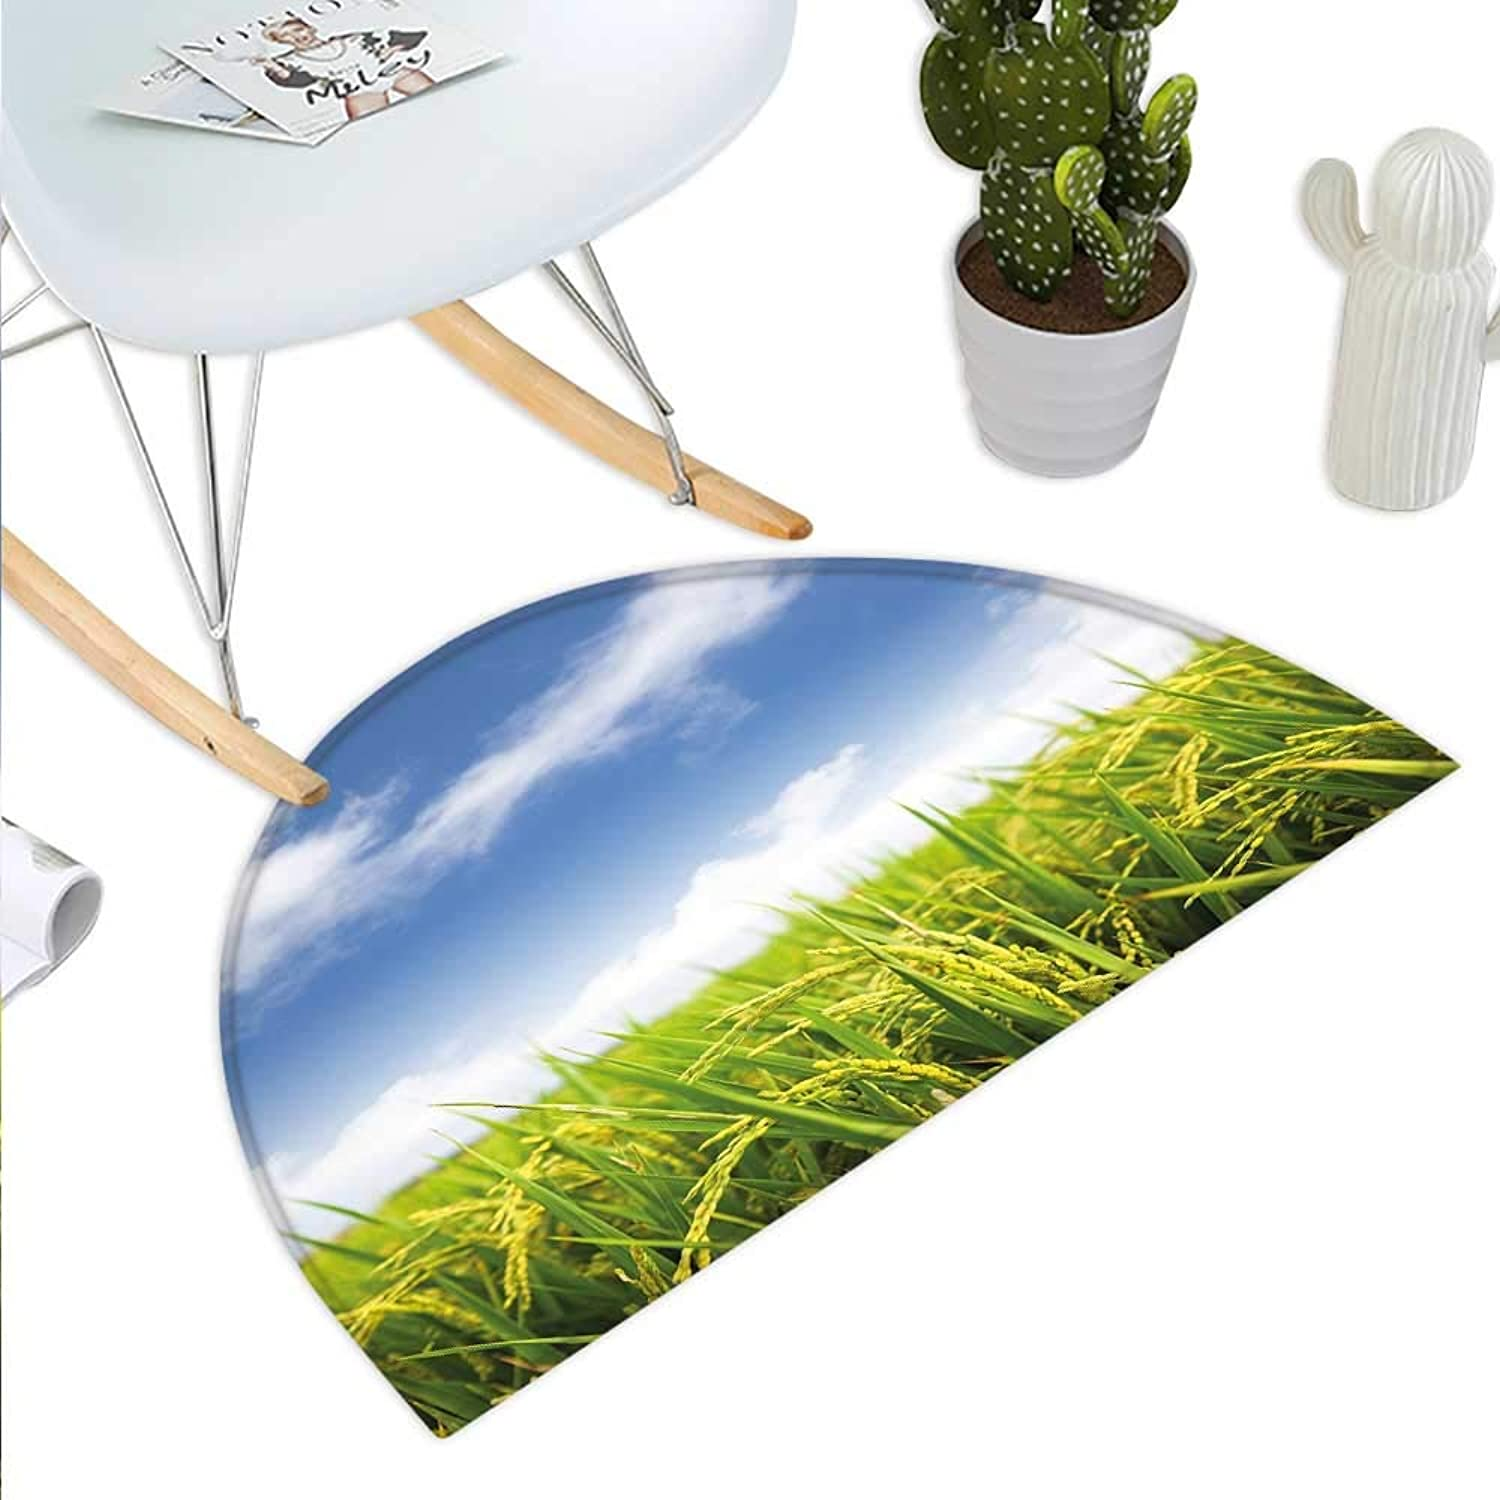 Plant Semicircle Doormat Asian Cultivated Farm Paddy Rice Field Agriculture Food Eastern Countryside Halfmoon doormats H 43.3  xD 64.9  Sky bluee Apple Green